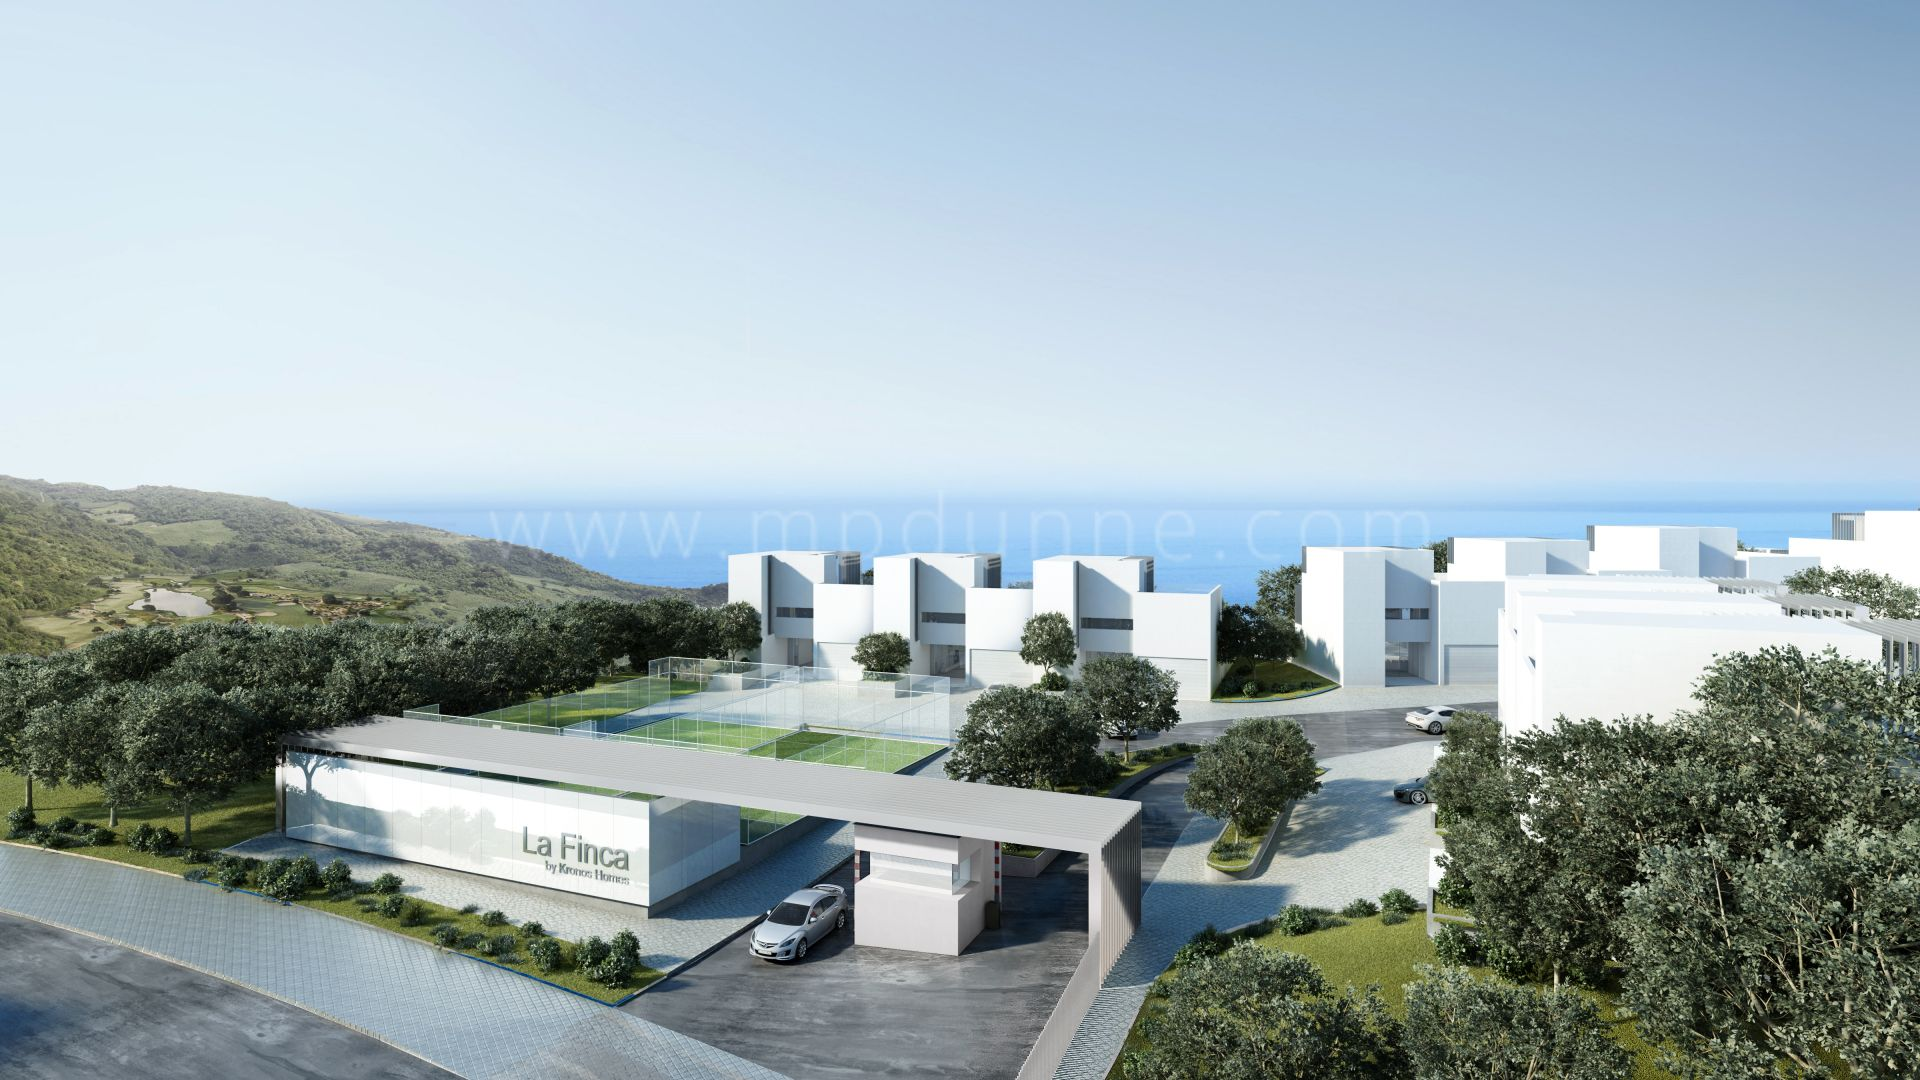 Development in Sotogrande